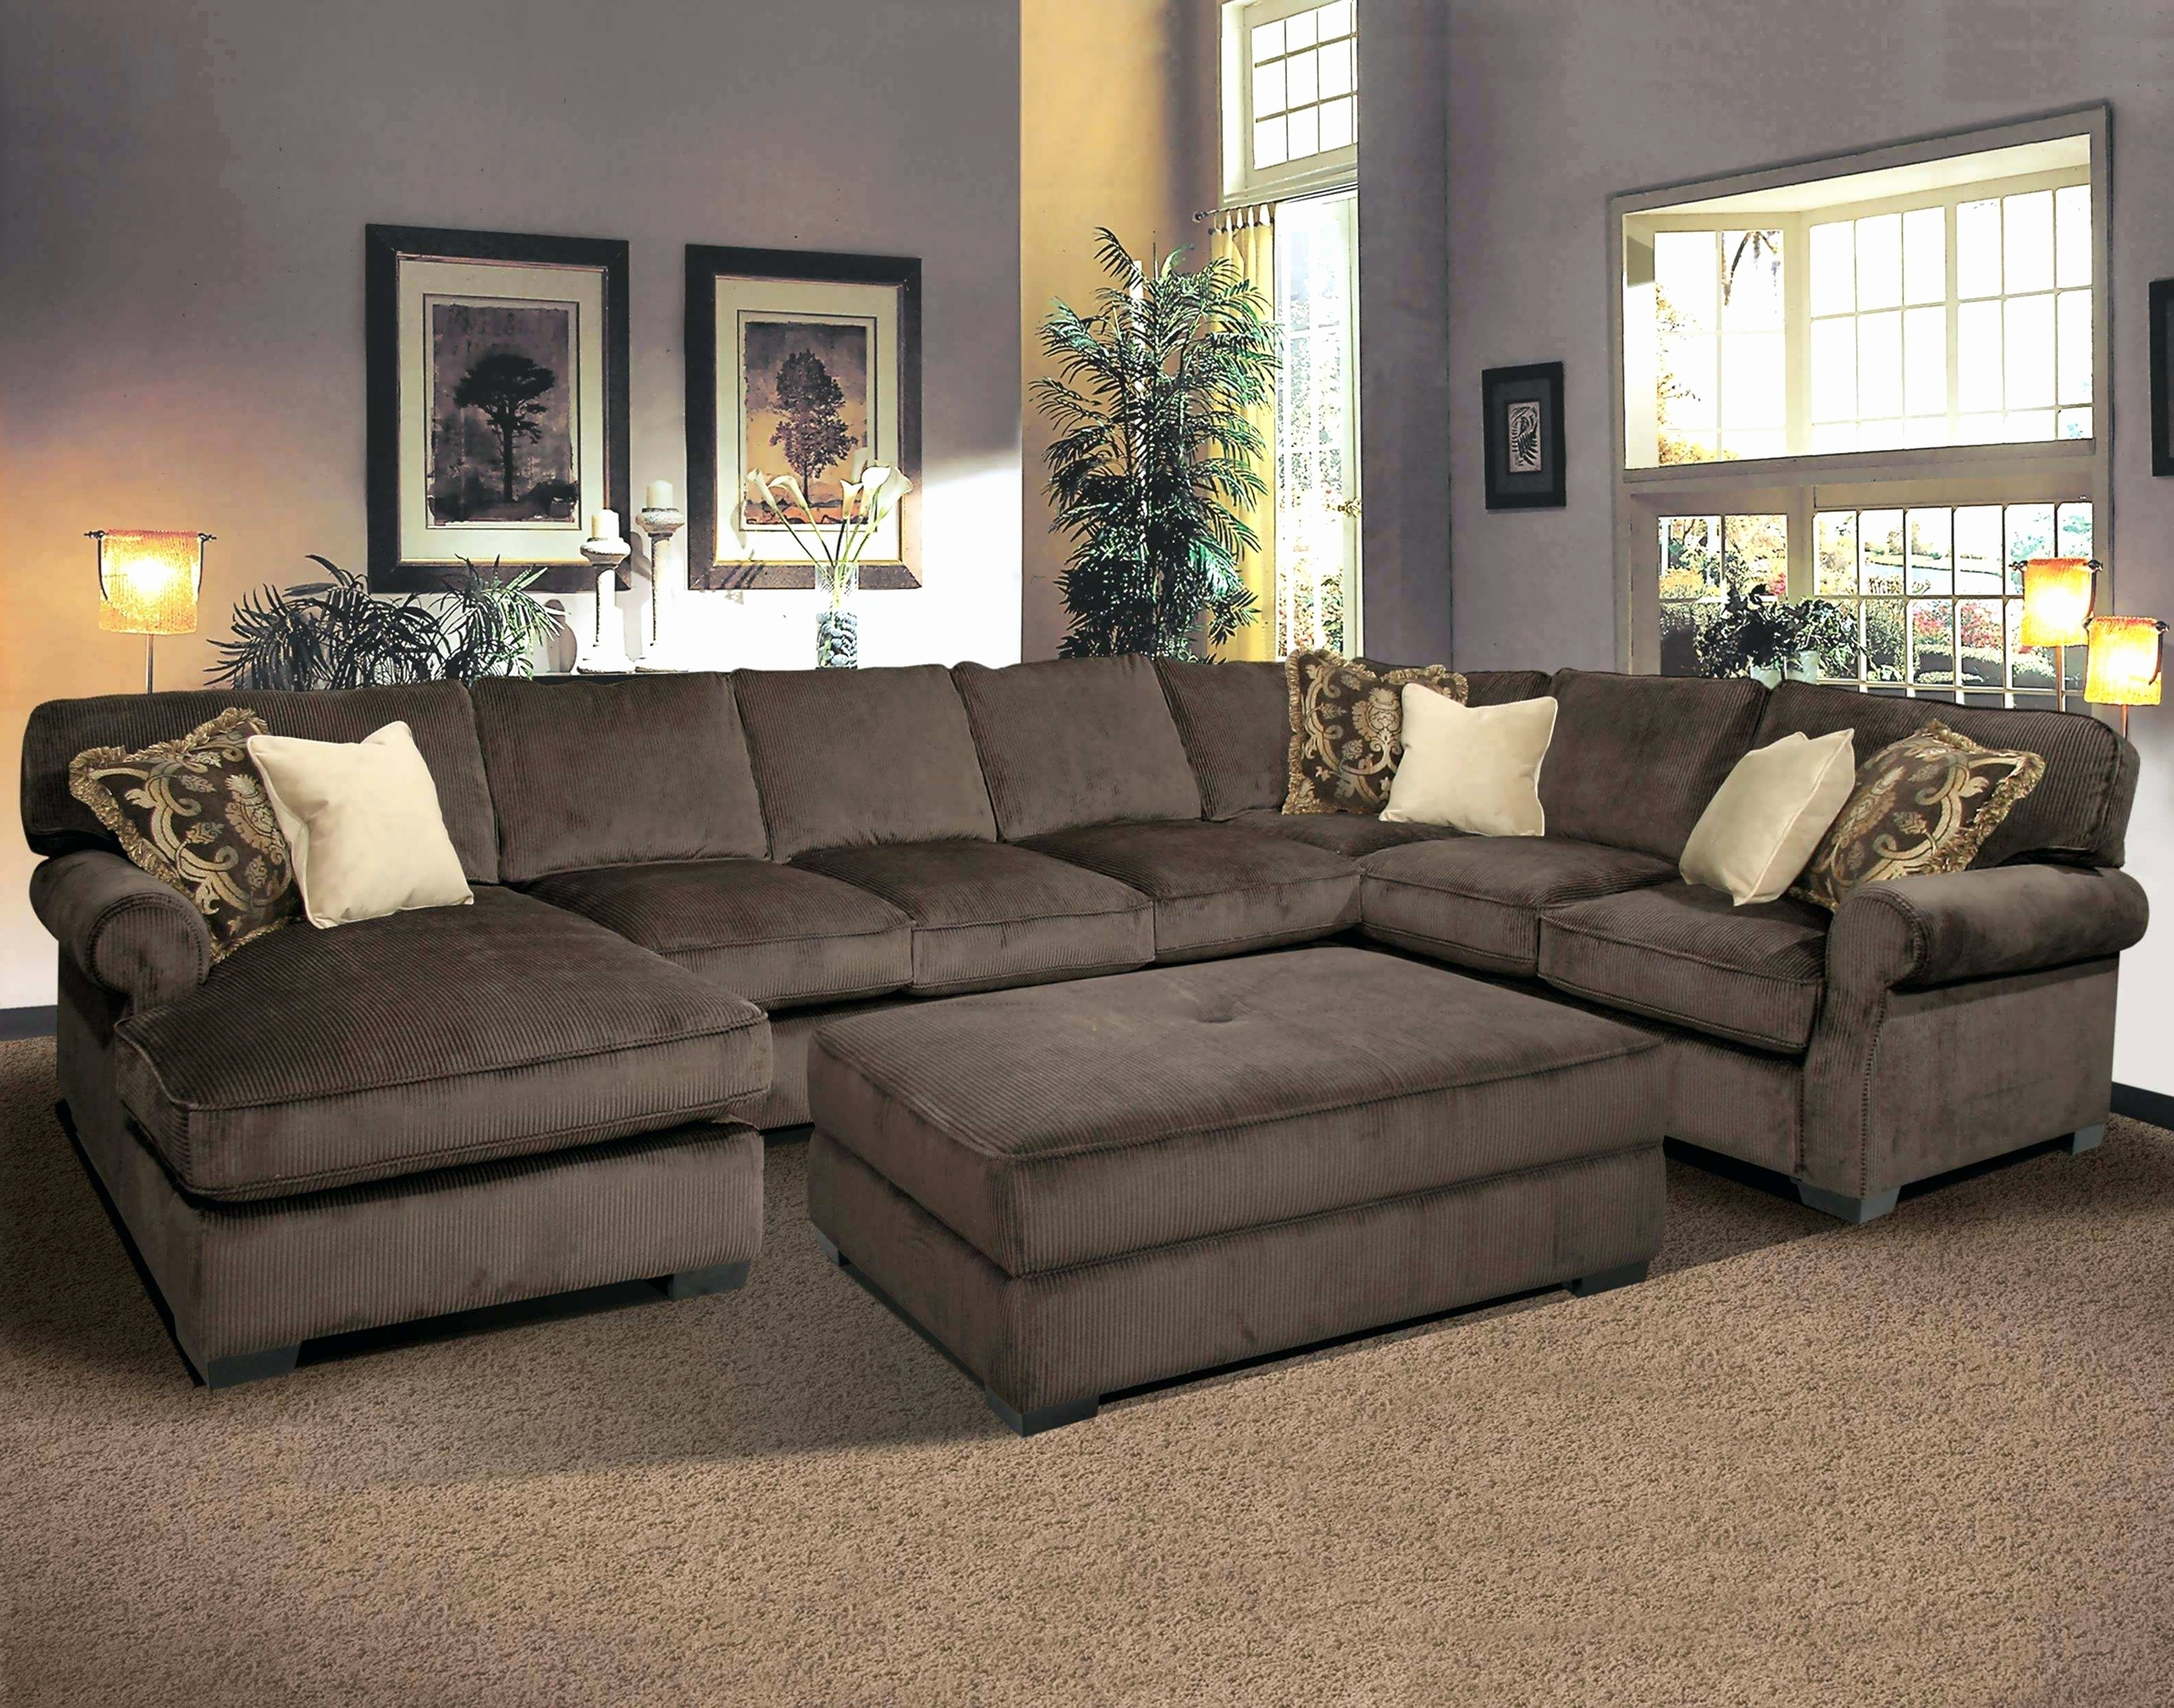 Most Popular Gta Sectional Sofas Regarding Genuine Leather Sofa Sets Kijiji Gta (View 14 of 15)